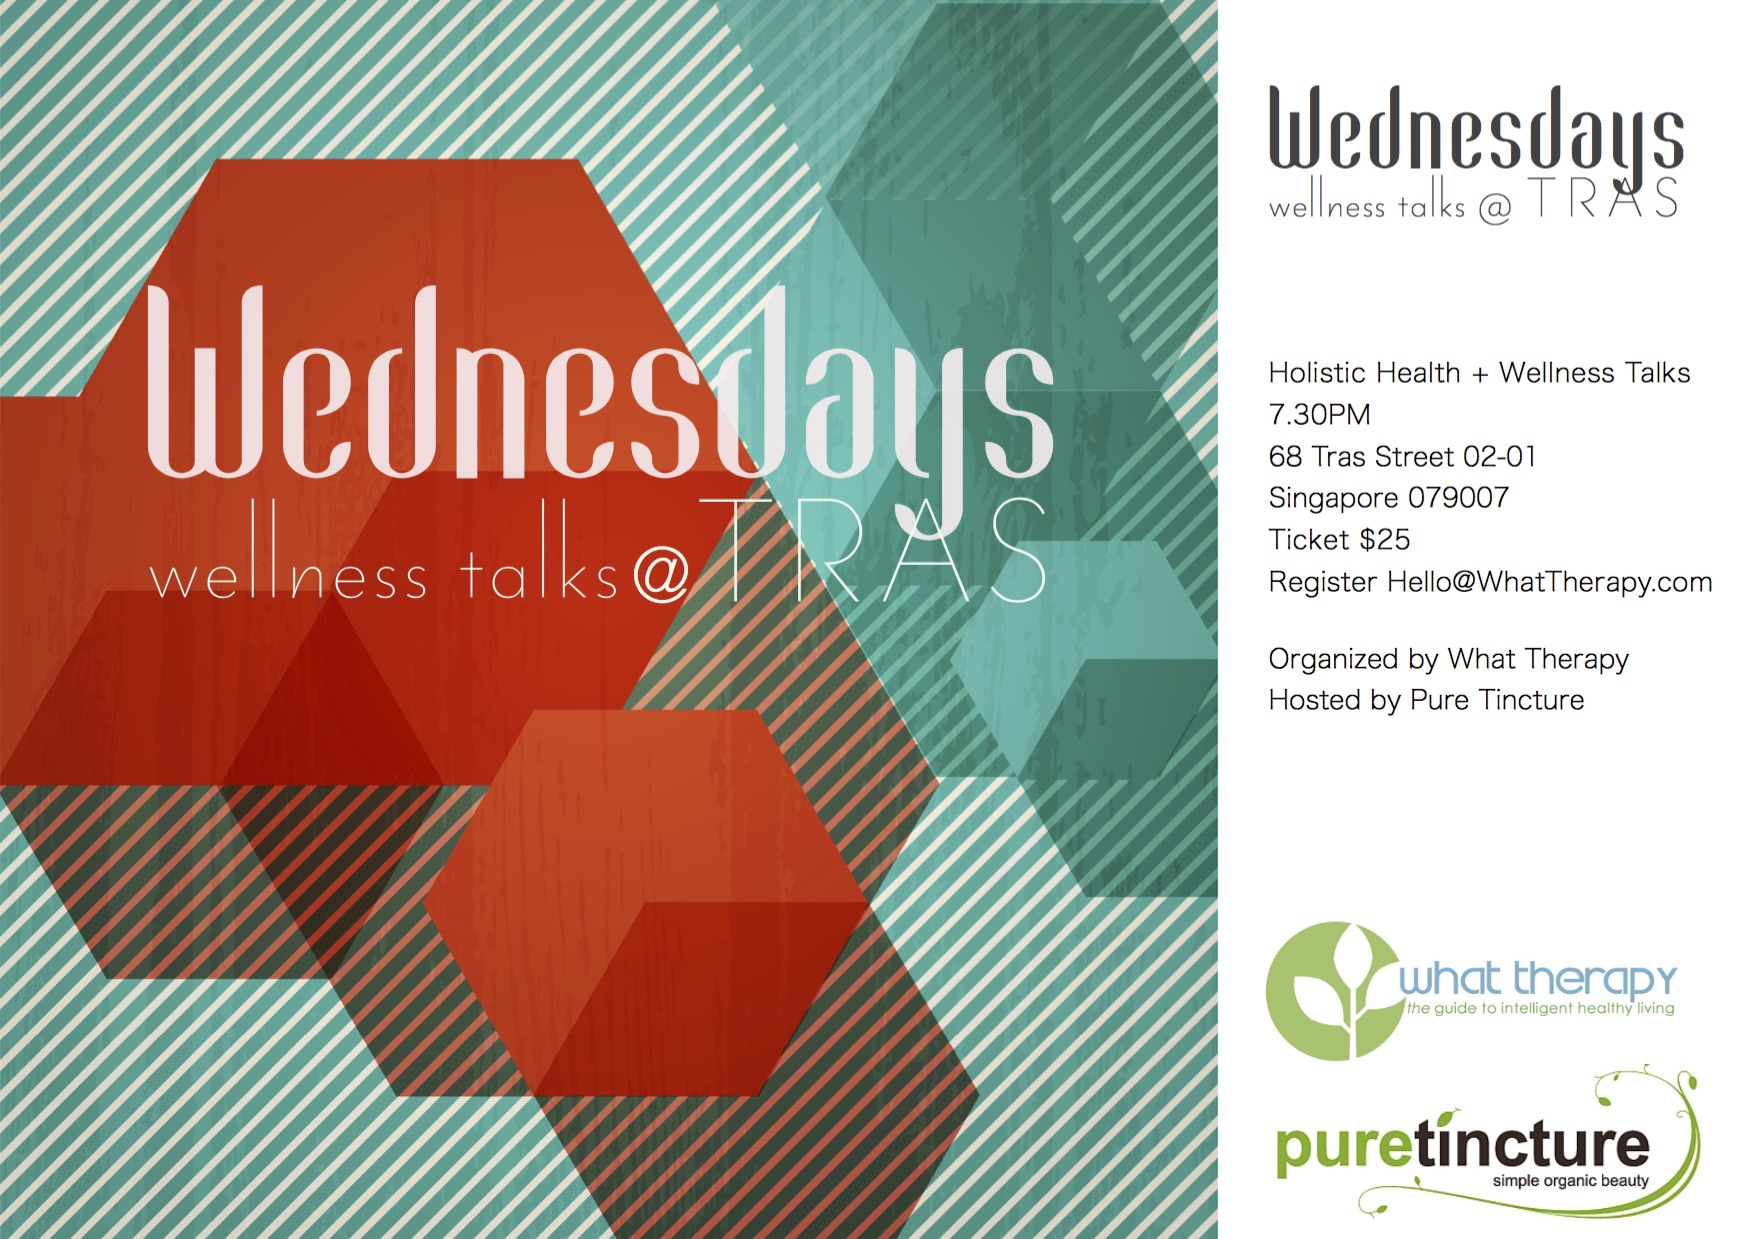 Wednesdays at Tras 2016 Wellness Talks What Therapy Pure Tincture Singapore